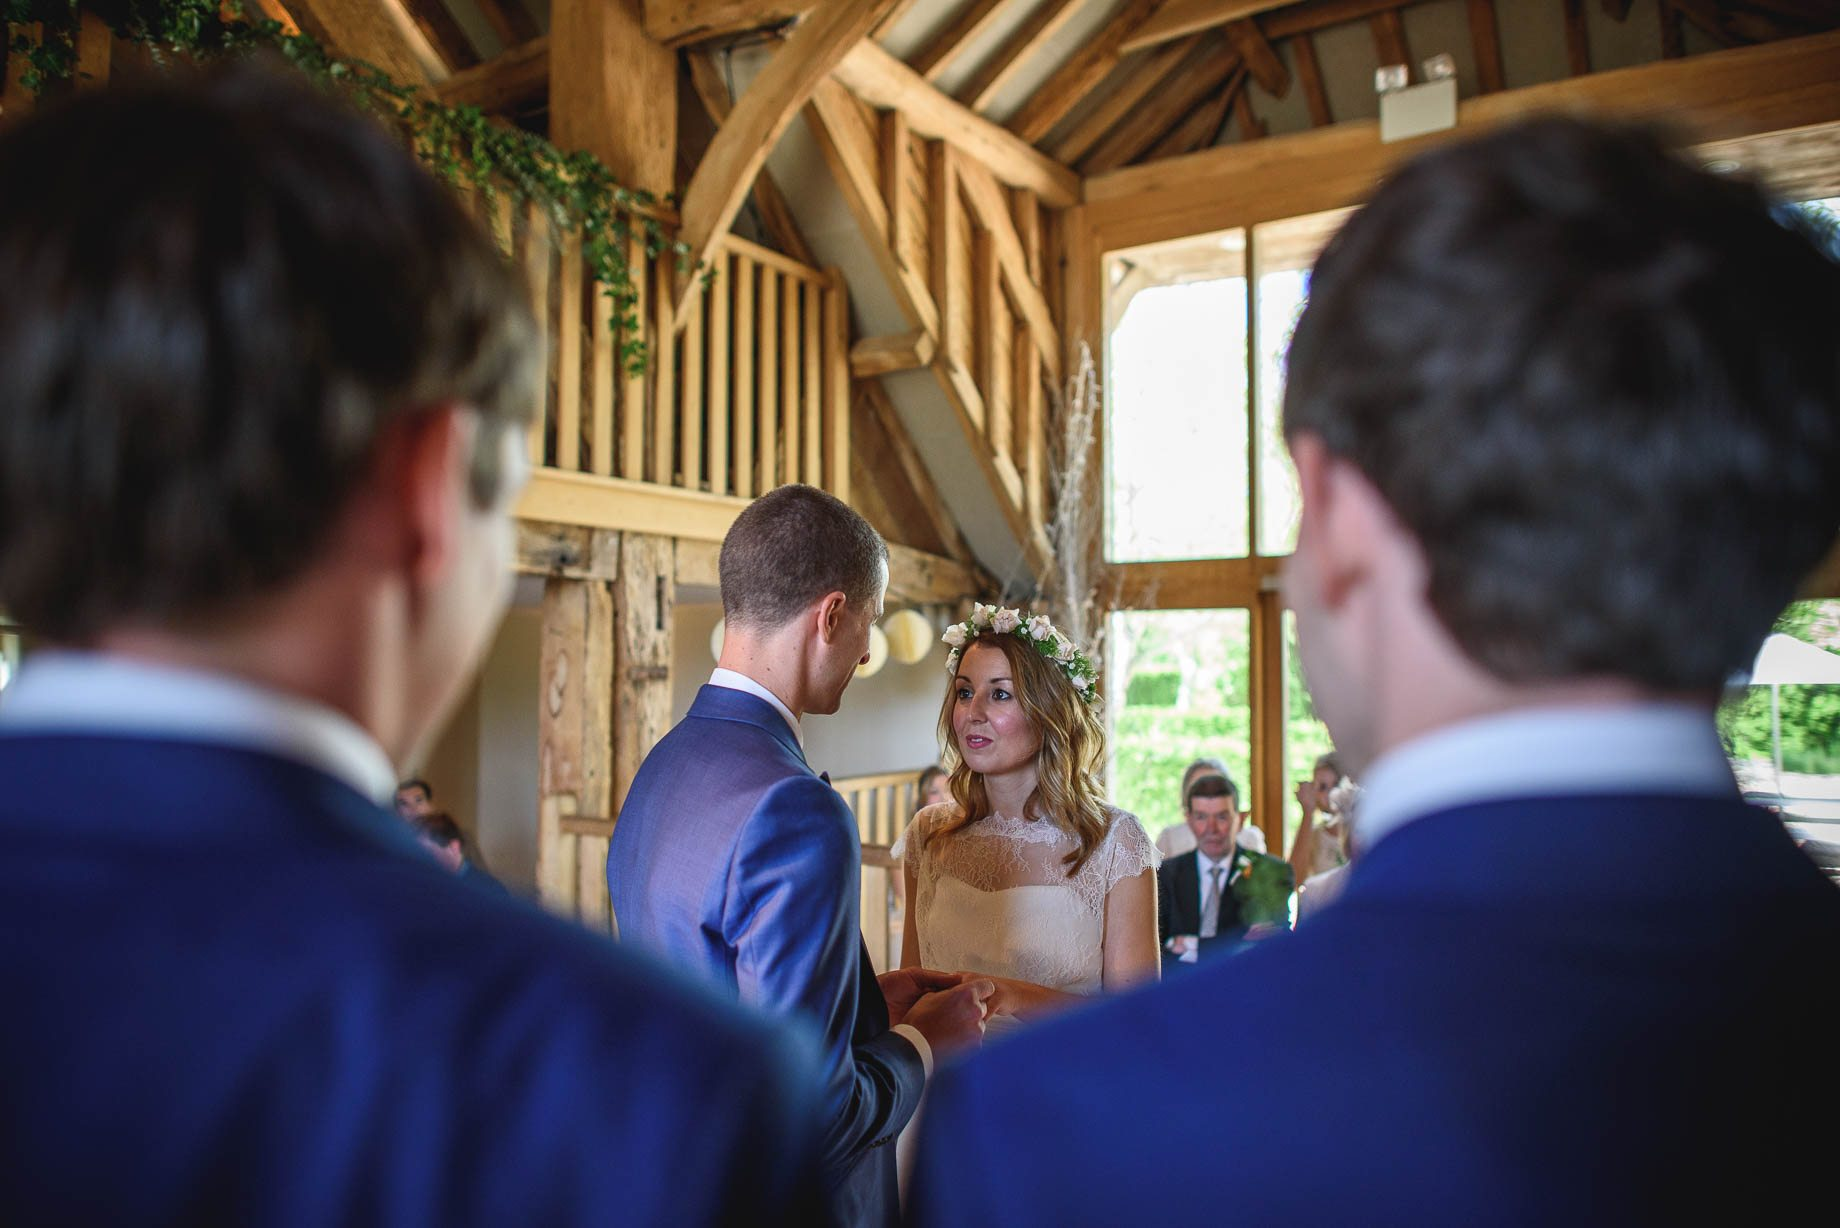 Bury Court Barn wedding photography by Guy Collier - Jo and Jamie (60 of 160)